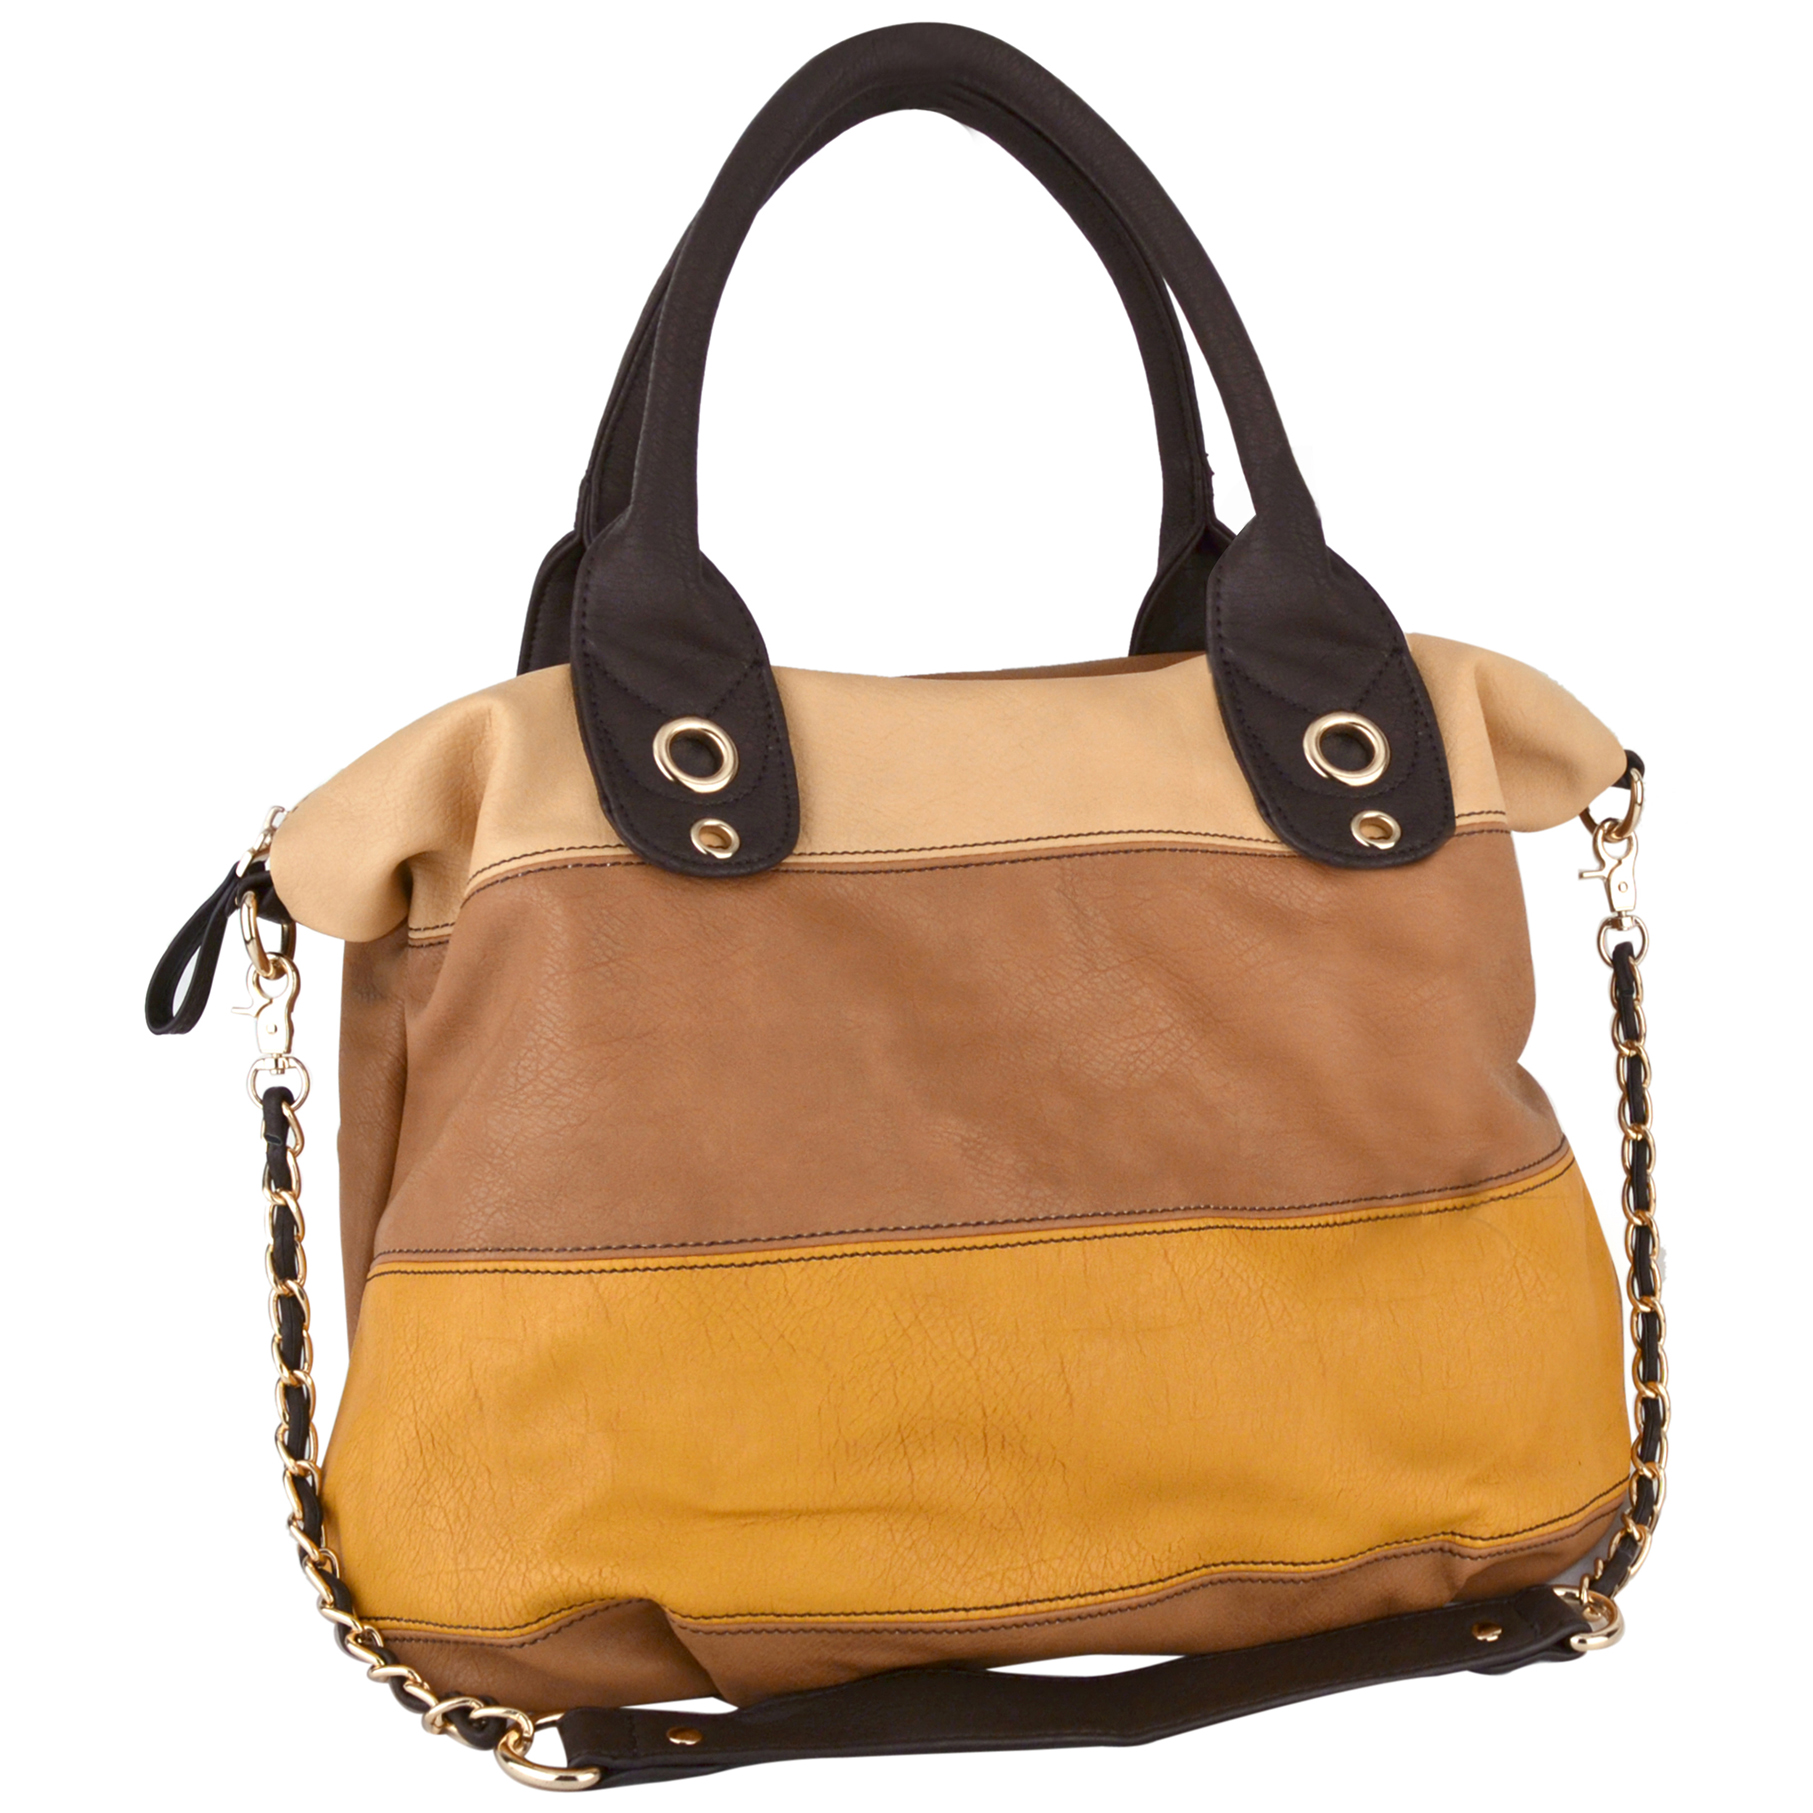 MAYA Taupe Large Shopper Hobo Handbag Main